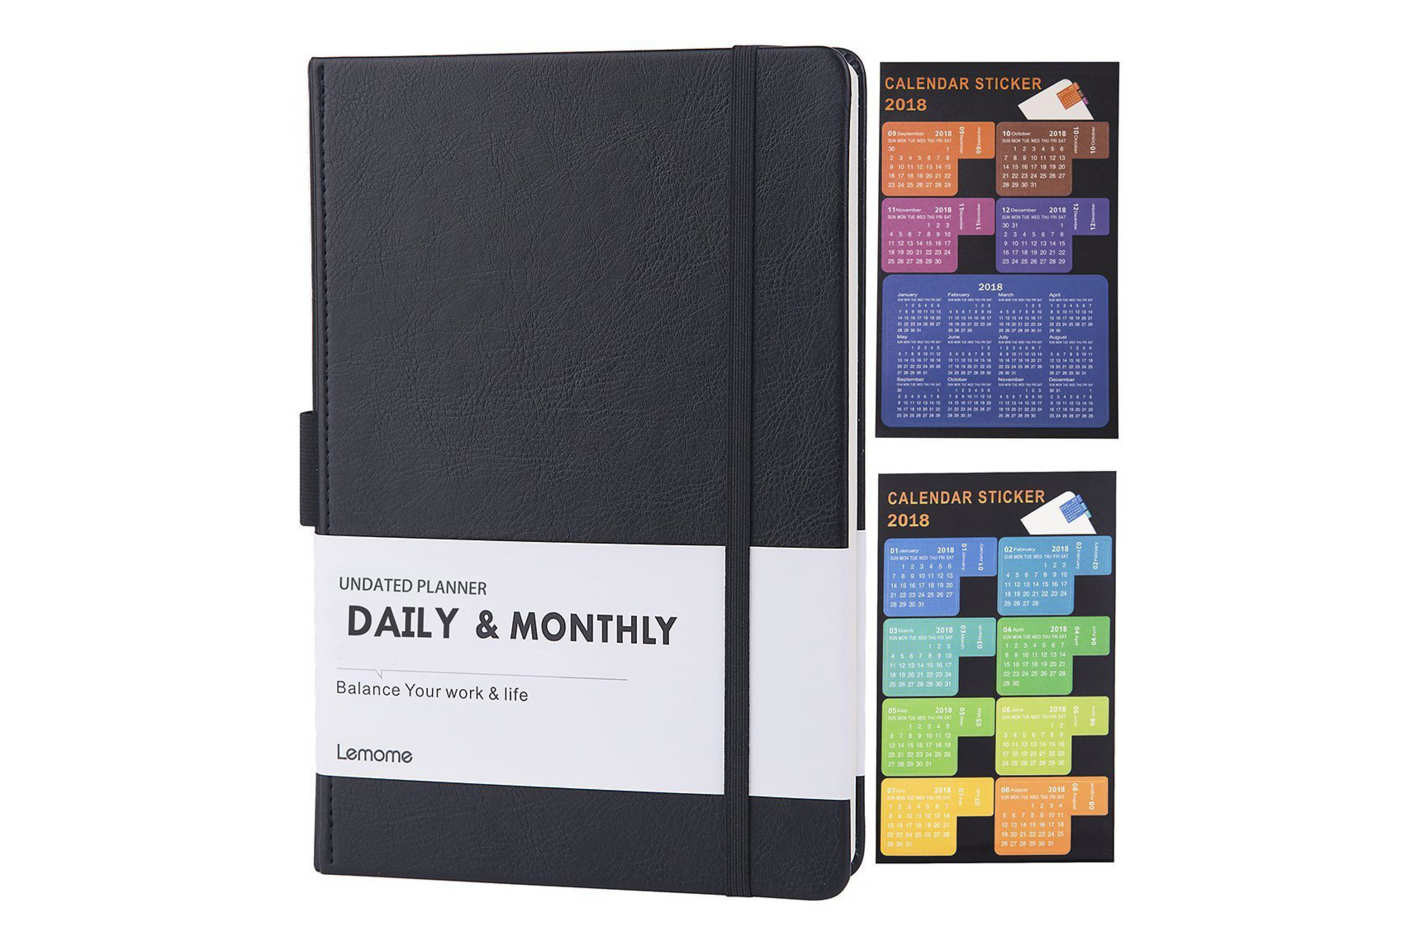 Best Organizer Planner  The Best Planners and Organizers on Amazon